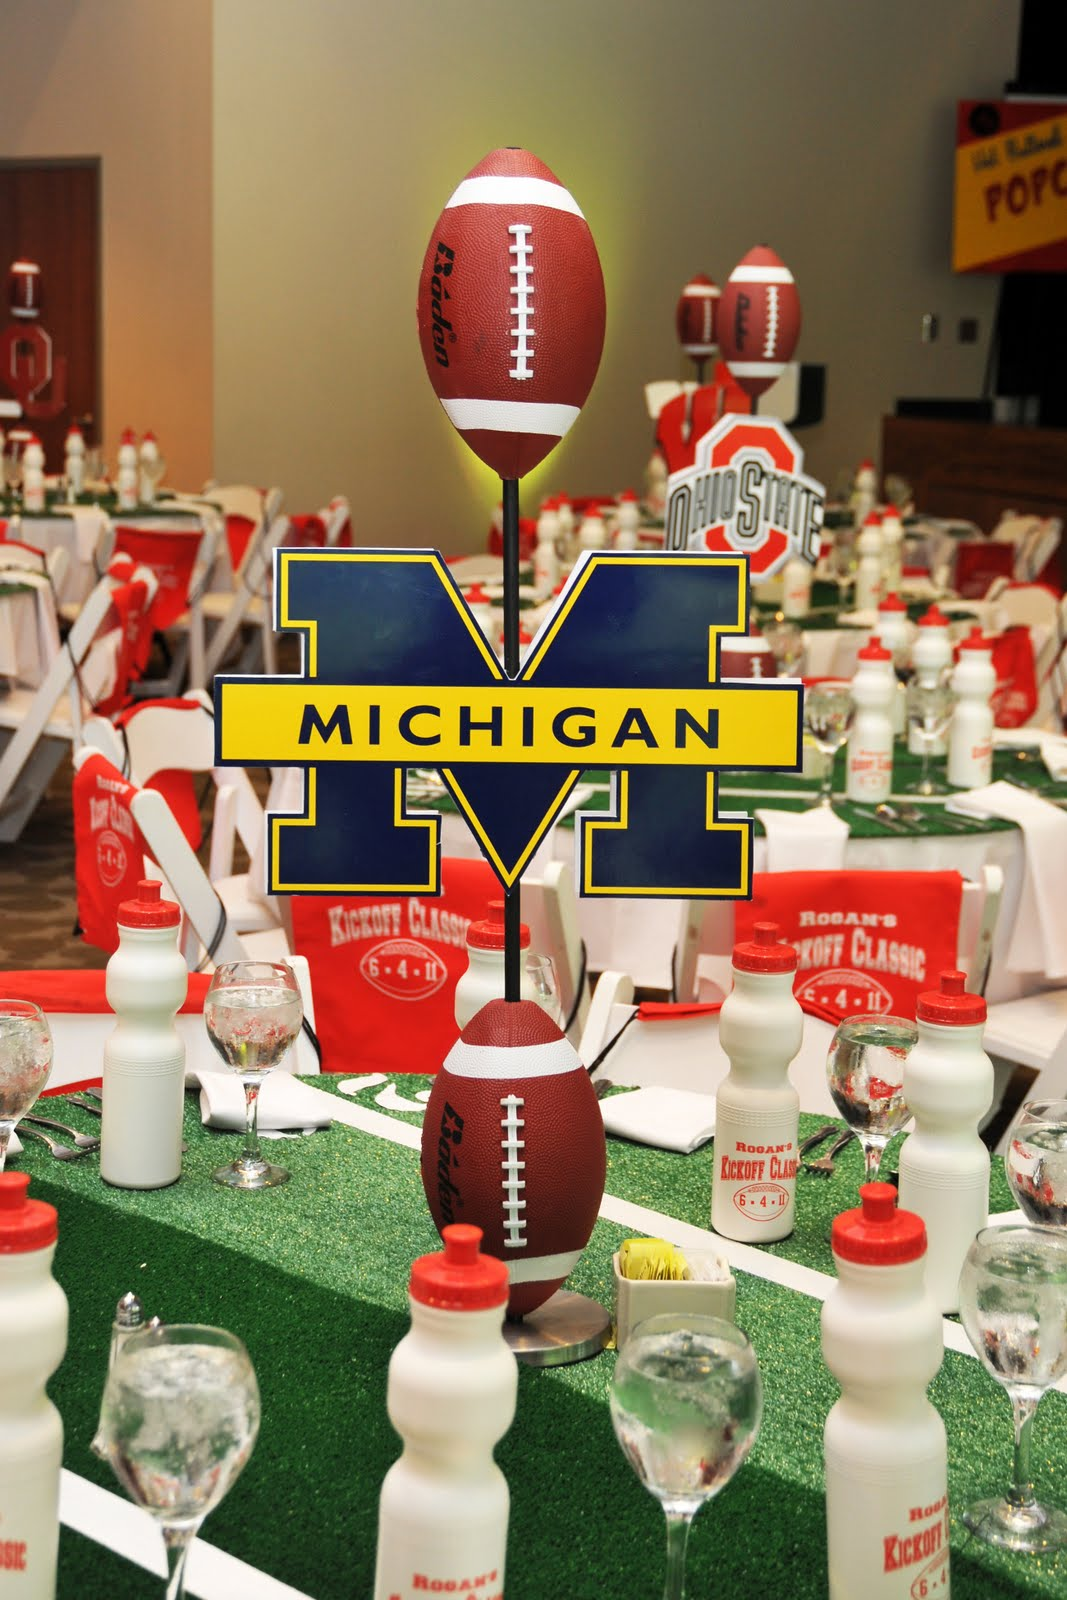 michigan+centerpiece.jpg